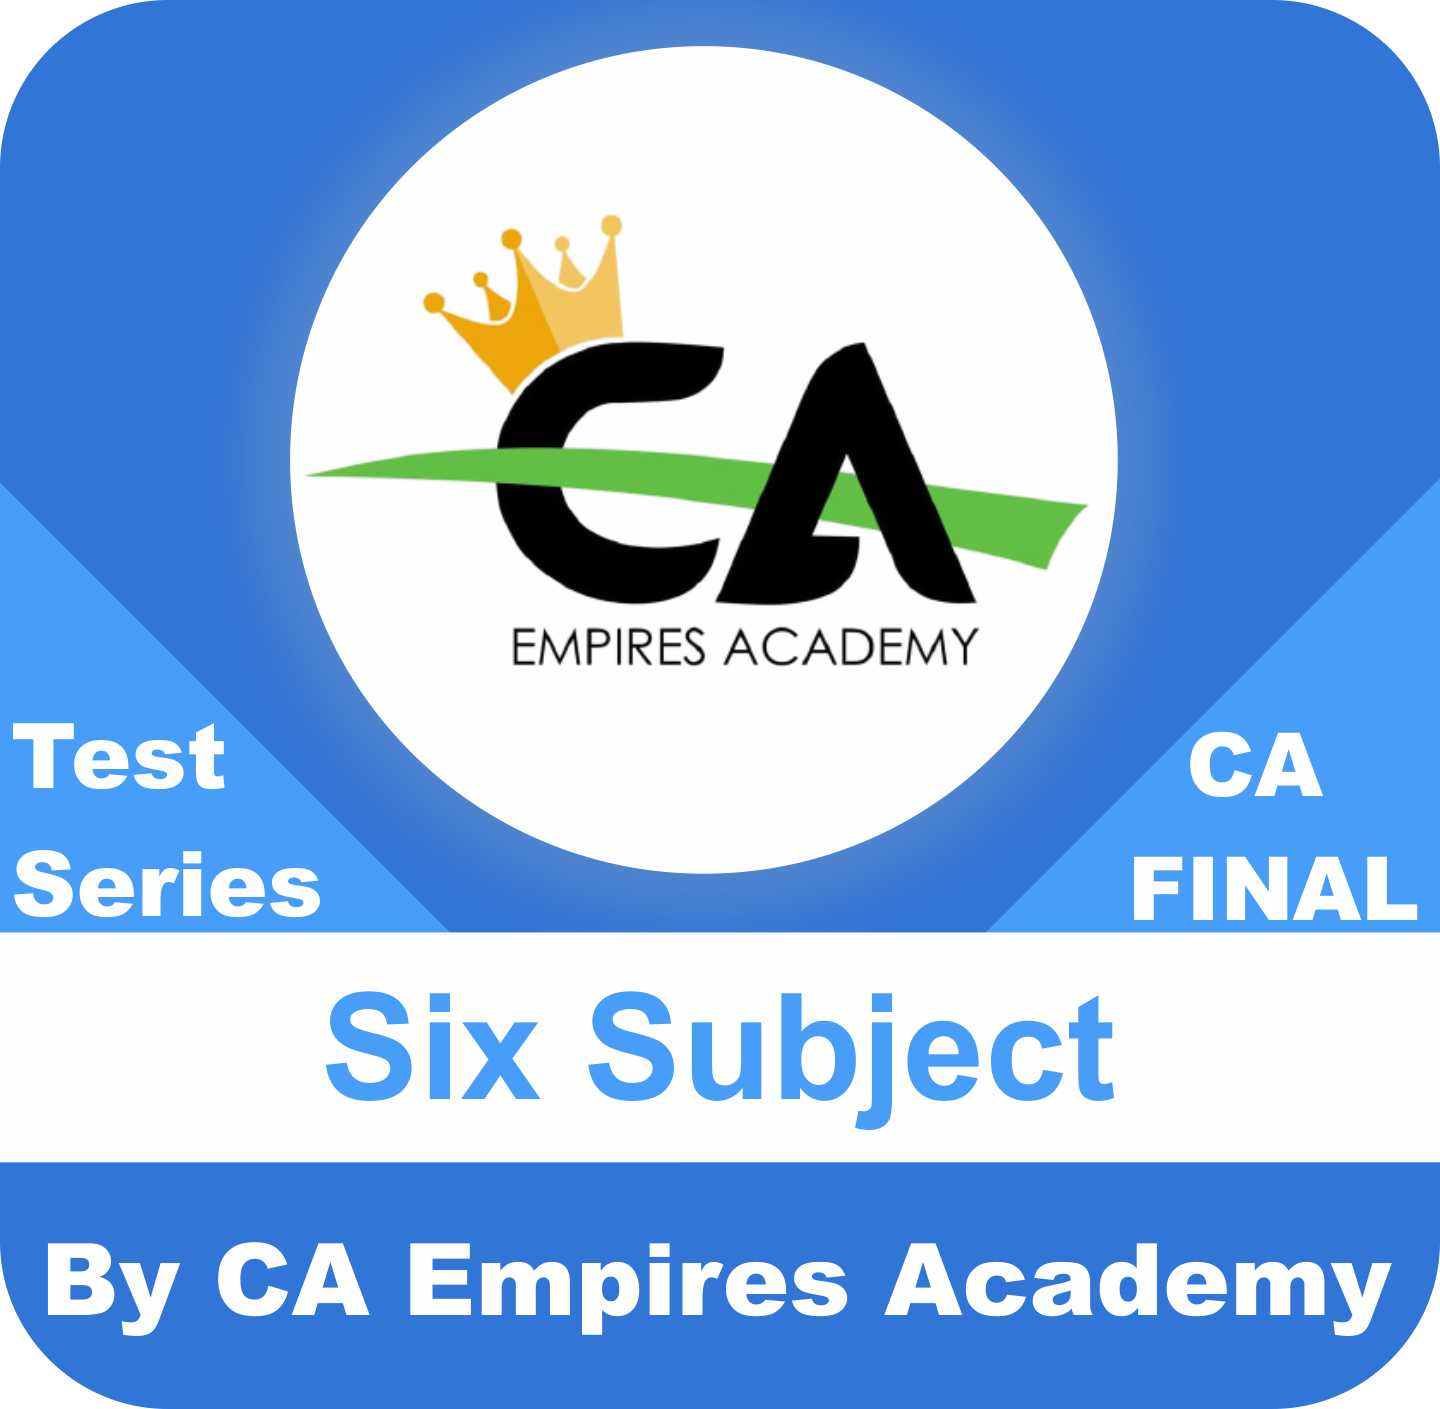 CA Final Any Six Subject Test Series in Gold Plan by CA Empires Academy